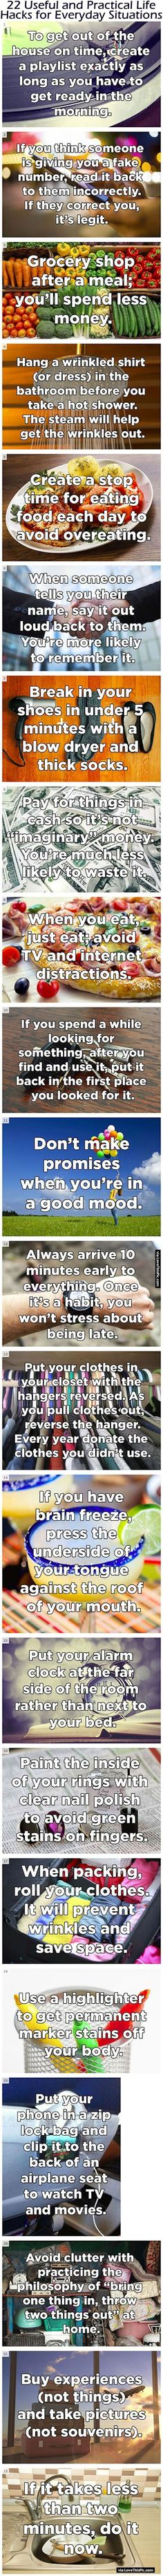 Psychological Life Hacks Pictures Photos And Images For